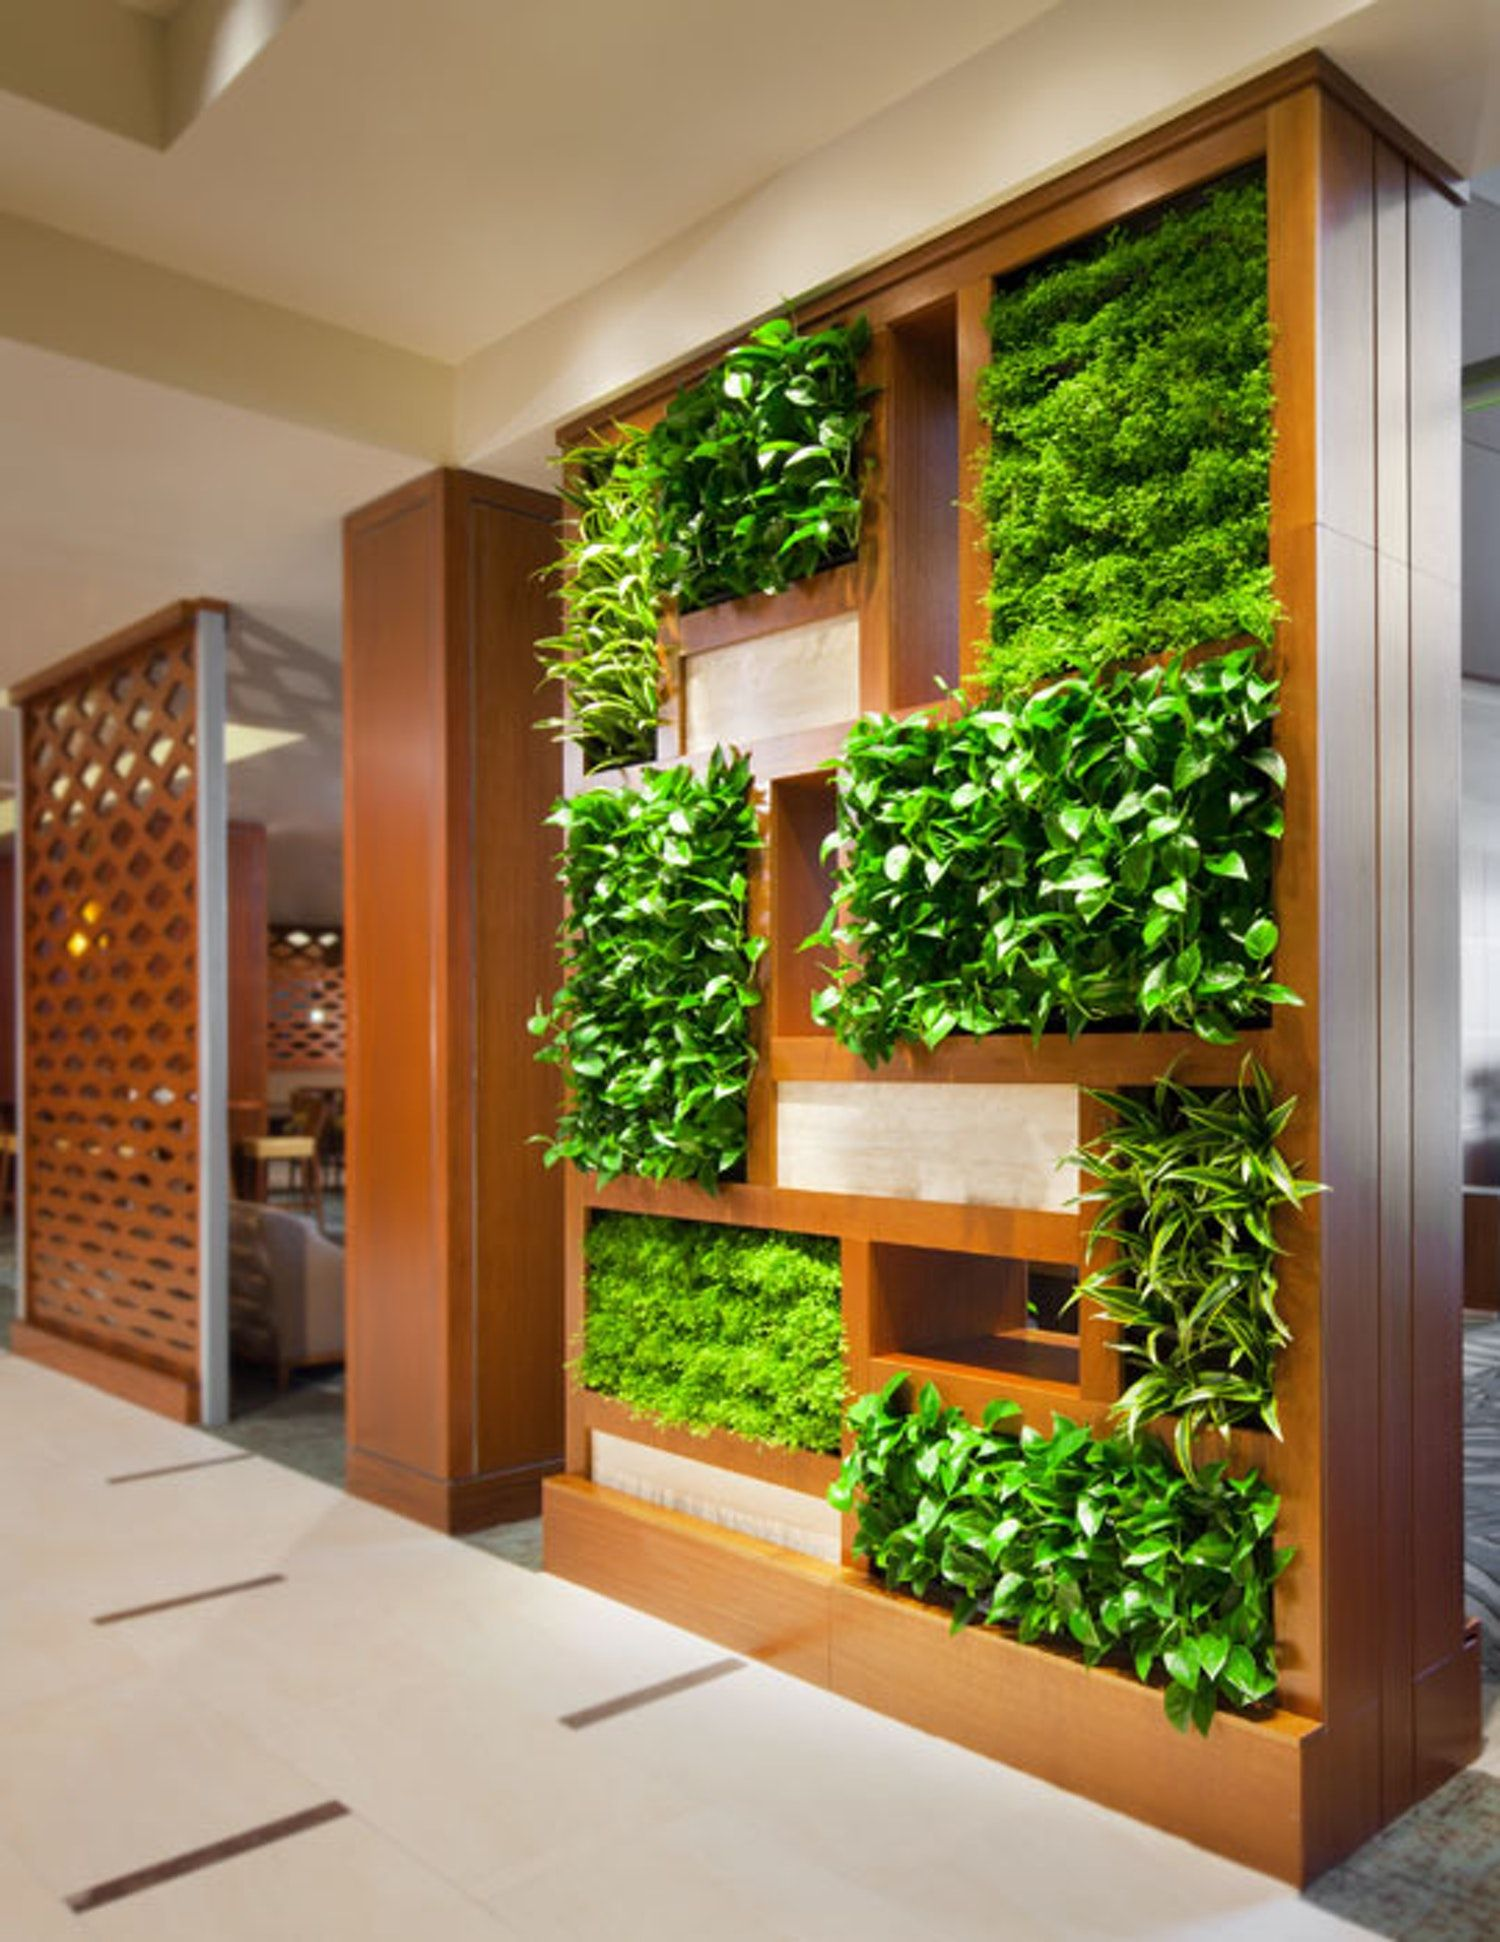 Tips For Growing U0026 Automating Your Own Vertical Indoor Garden. Fake PlantsGarden  Design IdeasVertical ...